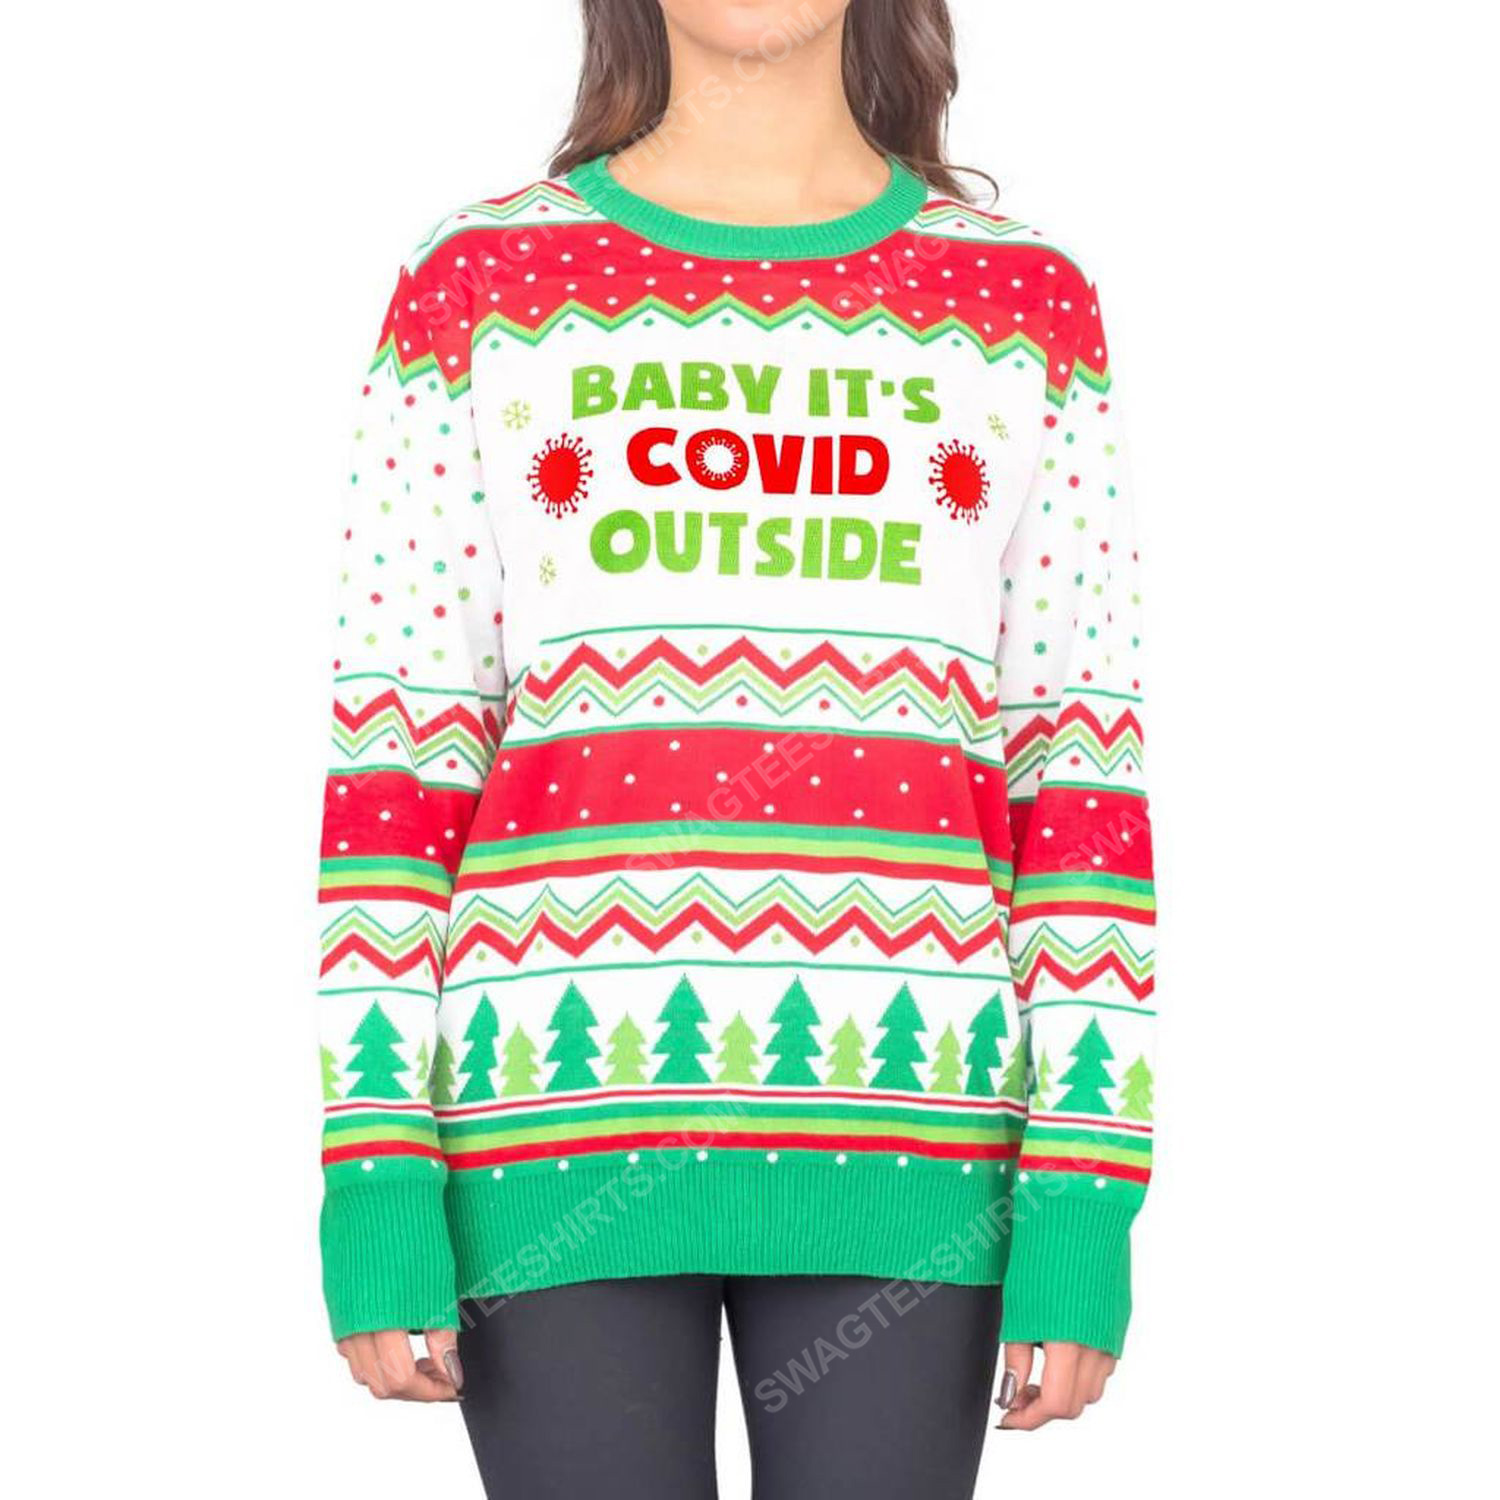 Baby it's covid outside full print ugly christmas sweater 4